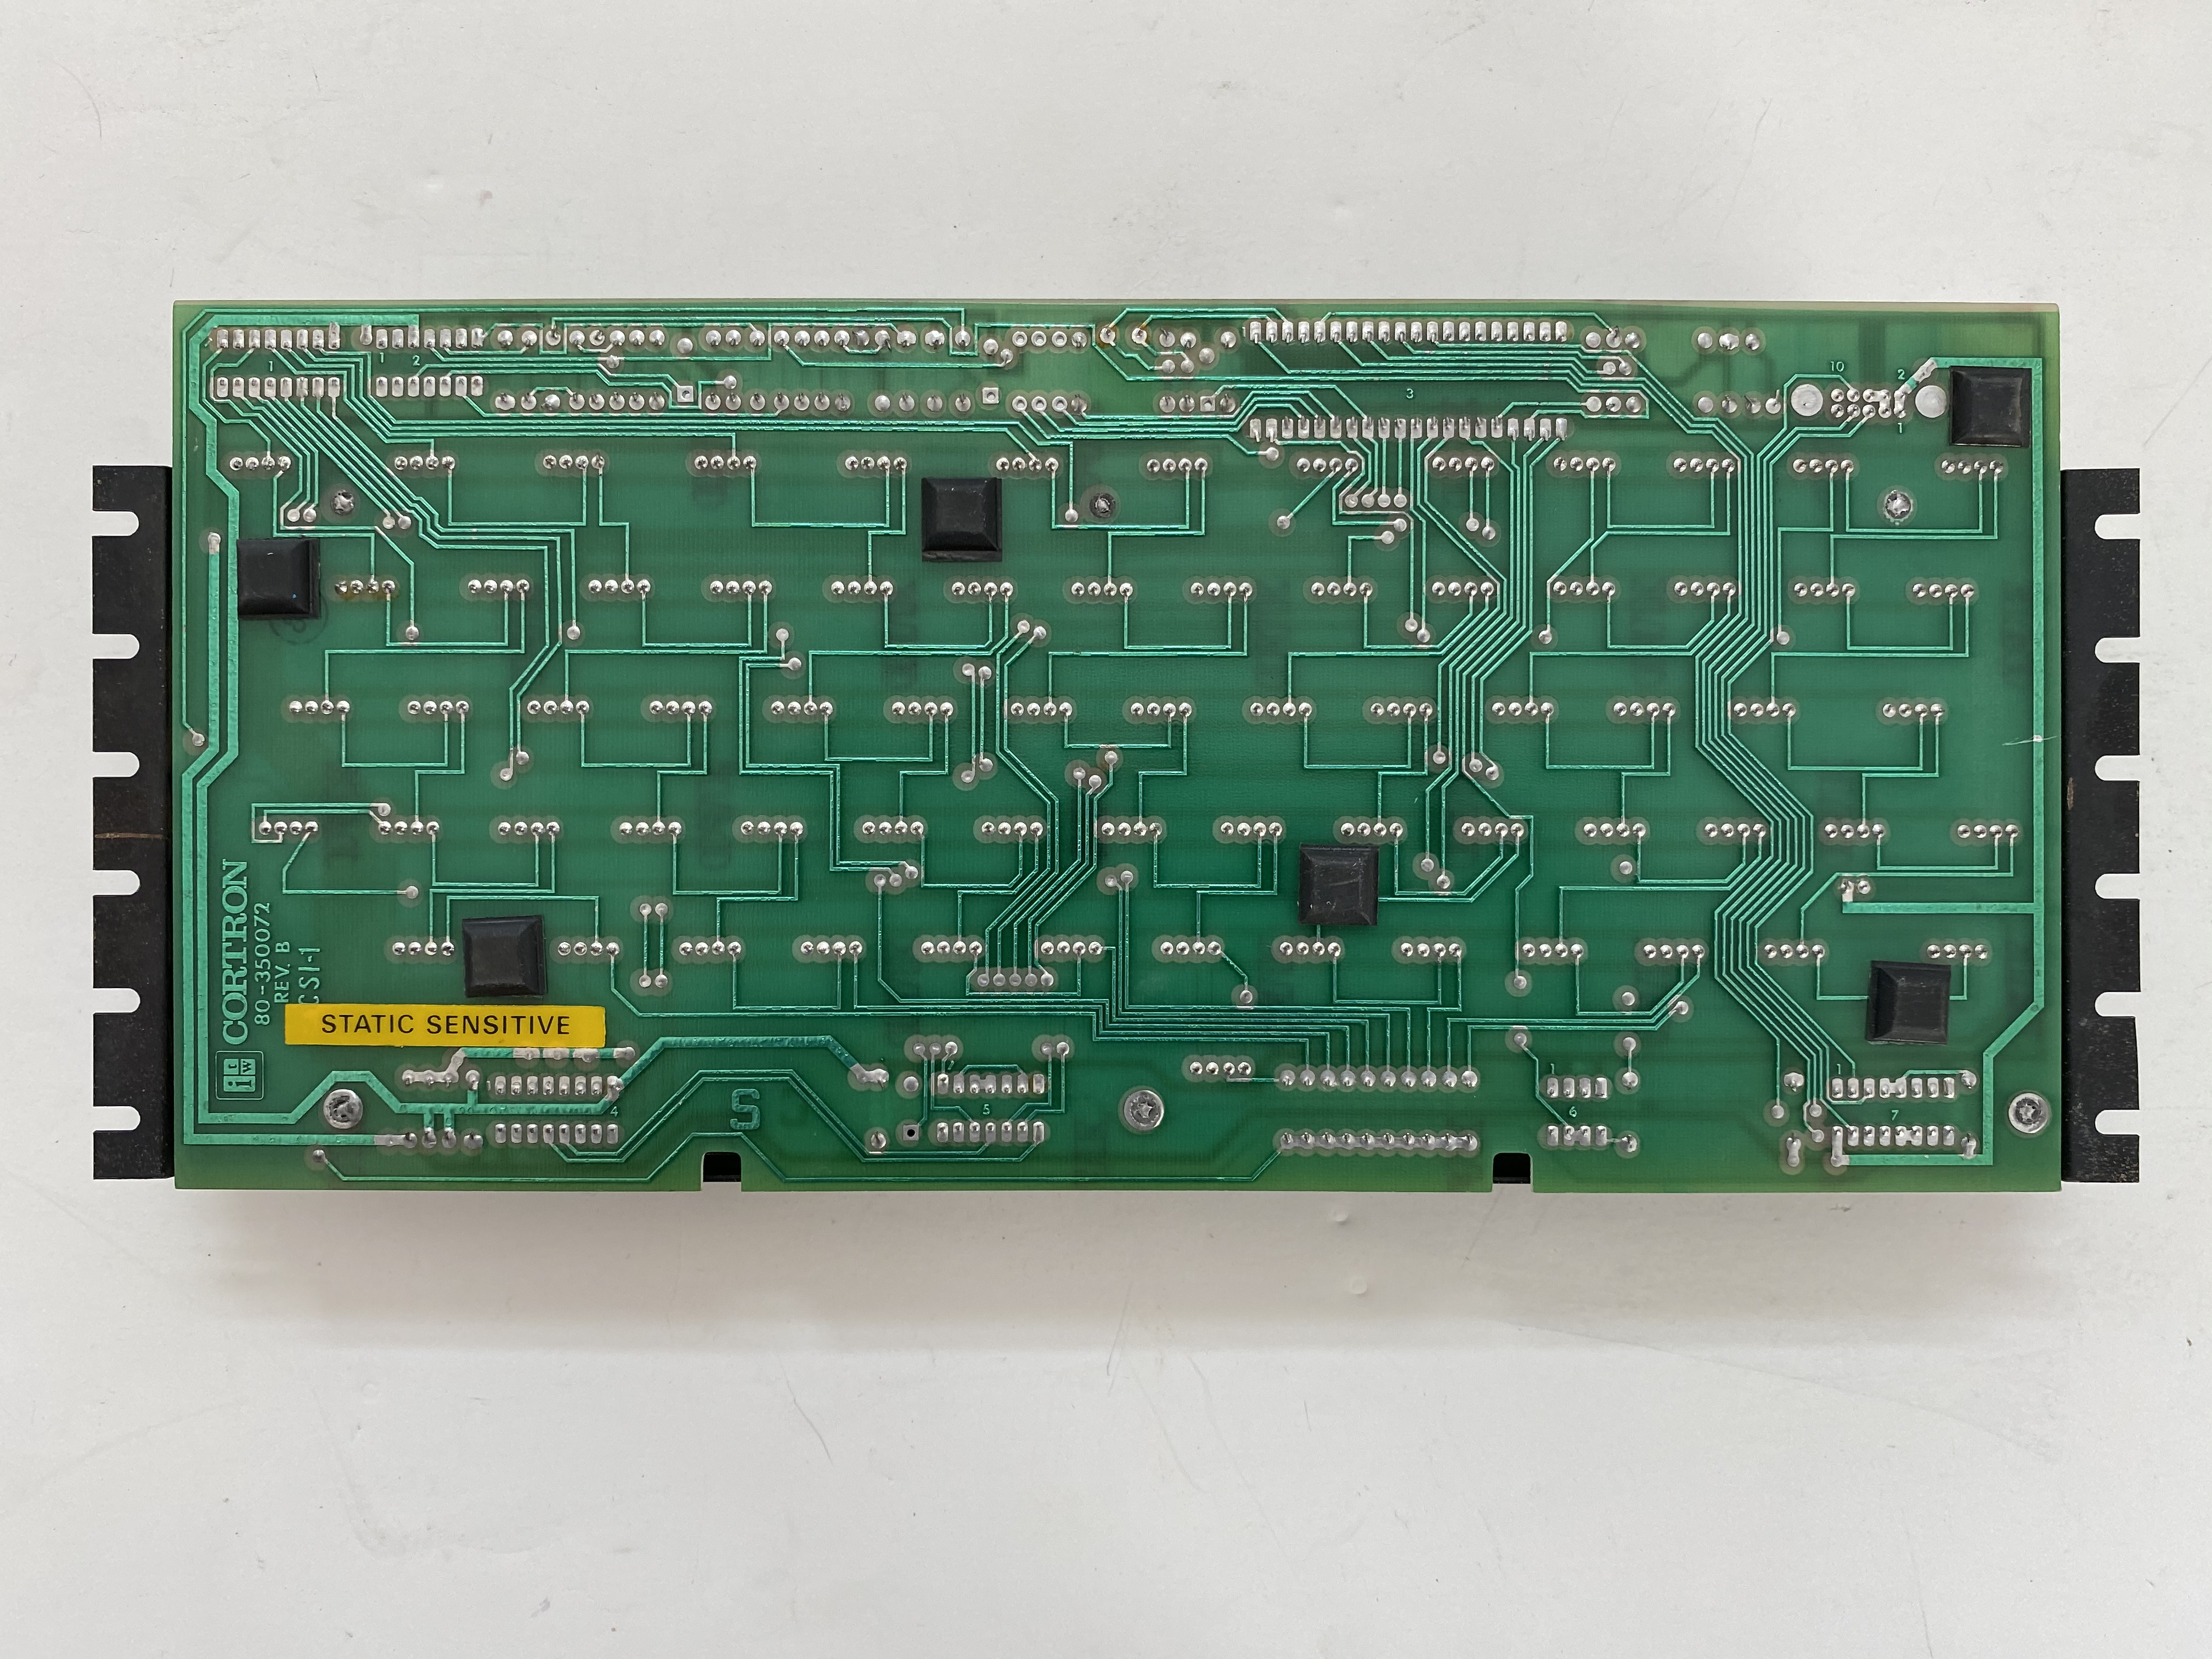 Rear PCB for the keyboard mechanism